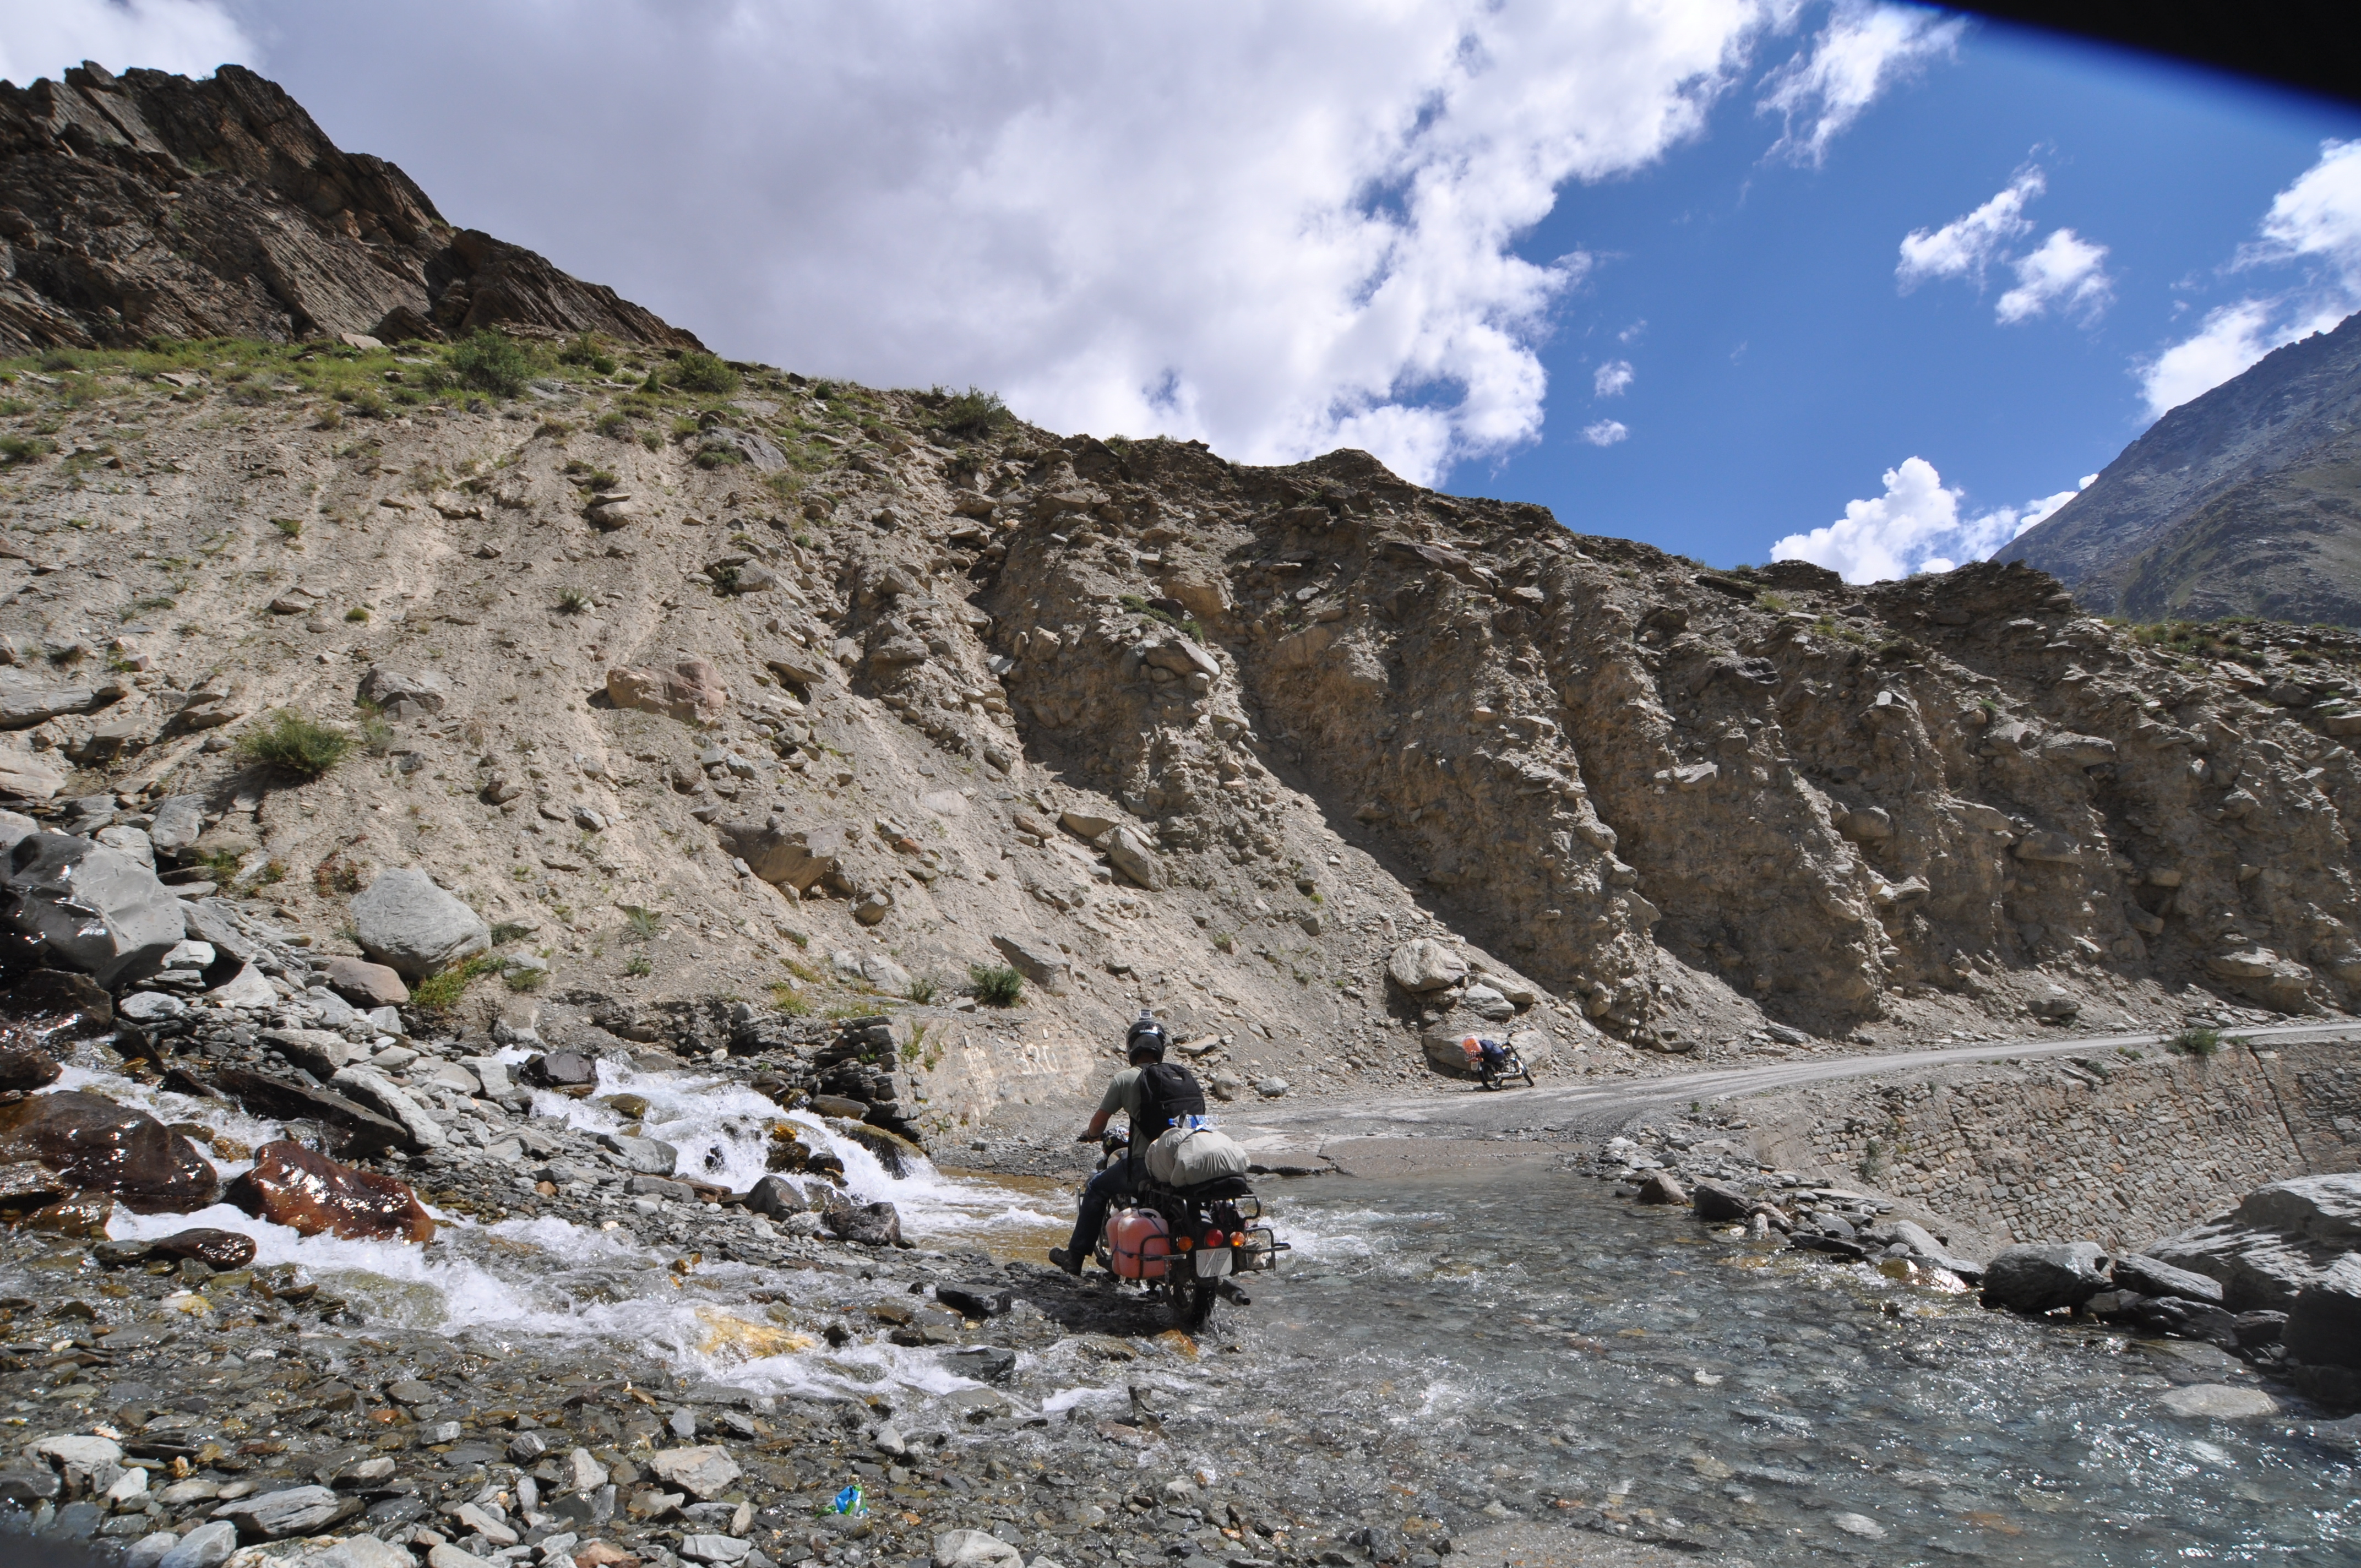 River crossings on the Leh Manali Highway, a high altitude road that traverses the great Himalayan r